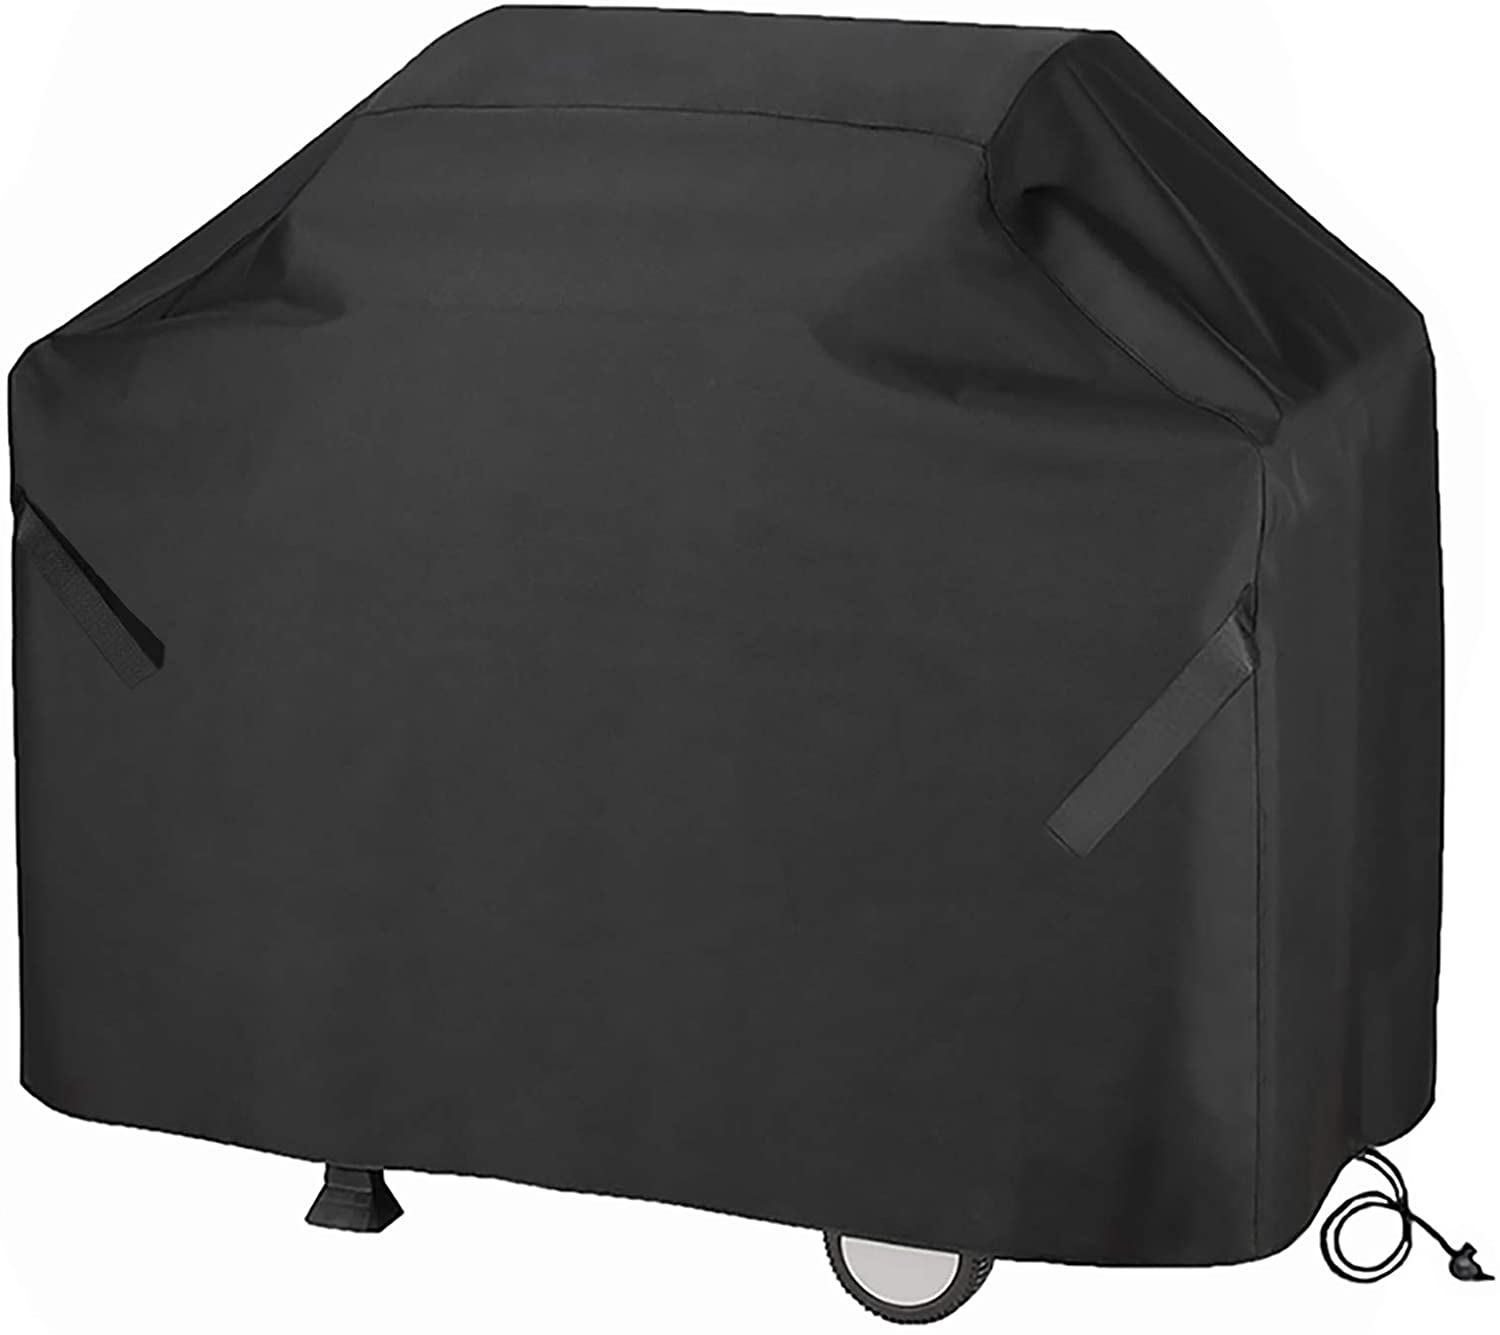 Szblnsm Grill Cover, 58-Inch Waterproof BBQ Cover, 600D Heavy Duty Tear-Resistant Gas Grill Cover for Most Brands of Grill